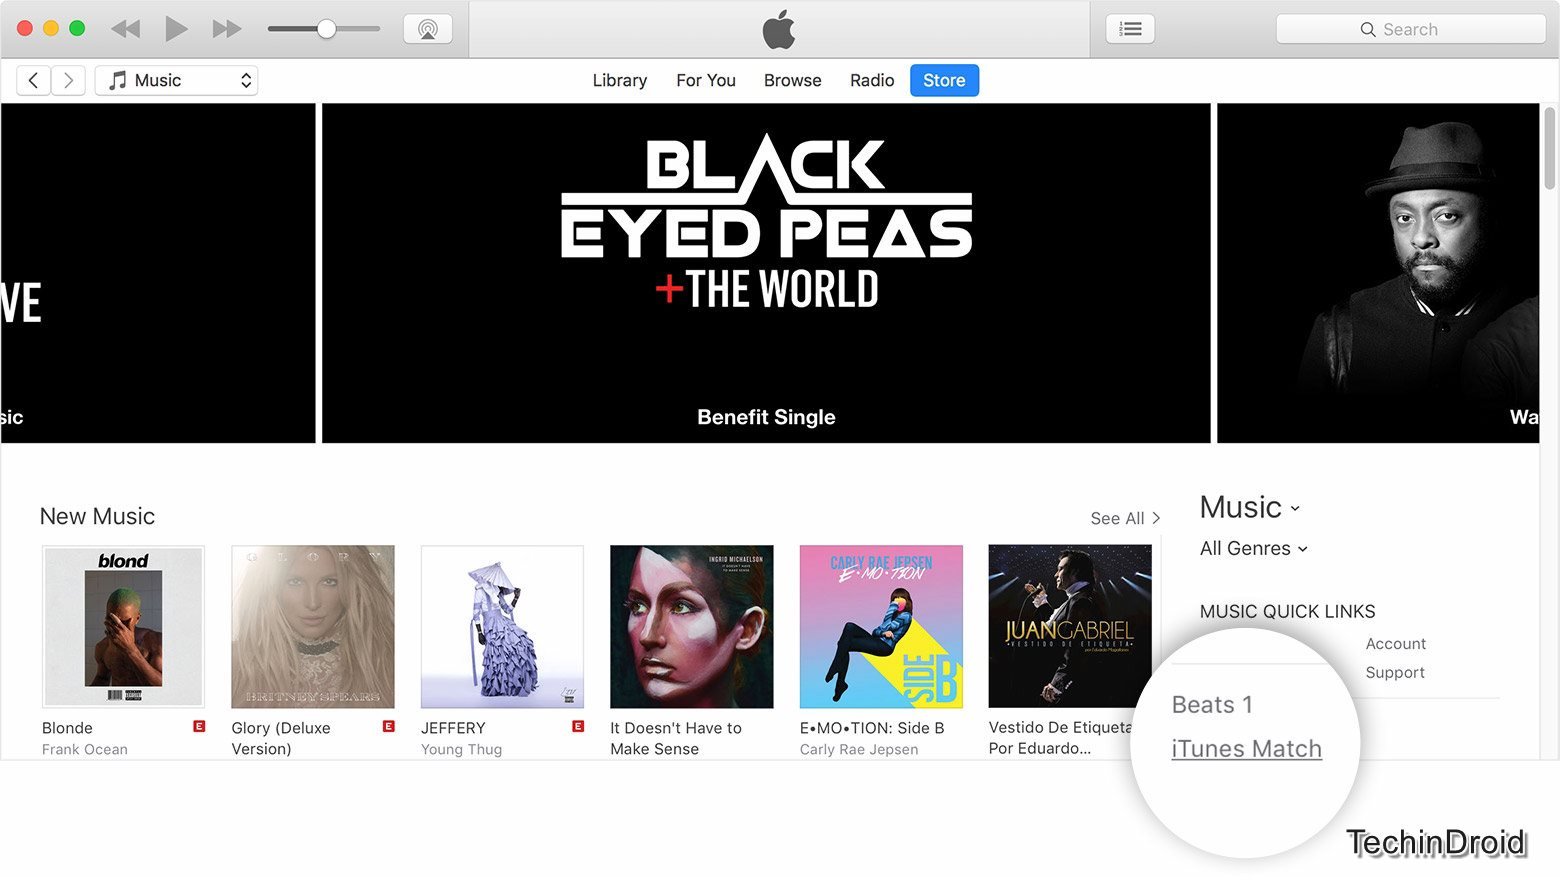 How to subscribe iTunes Match?